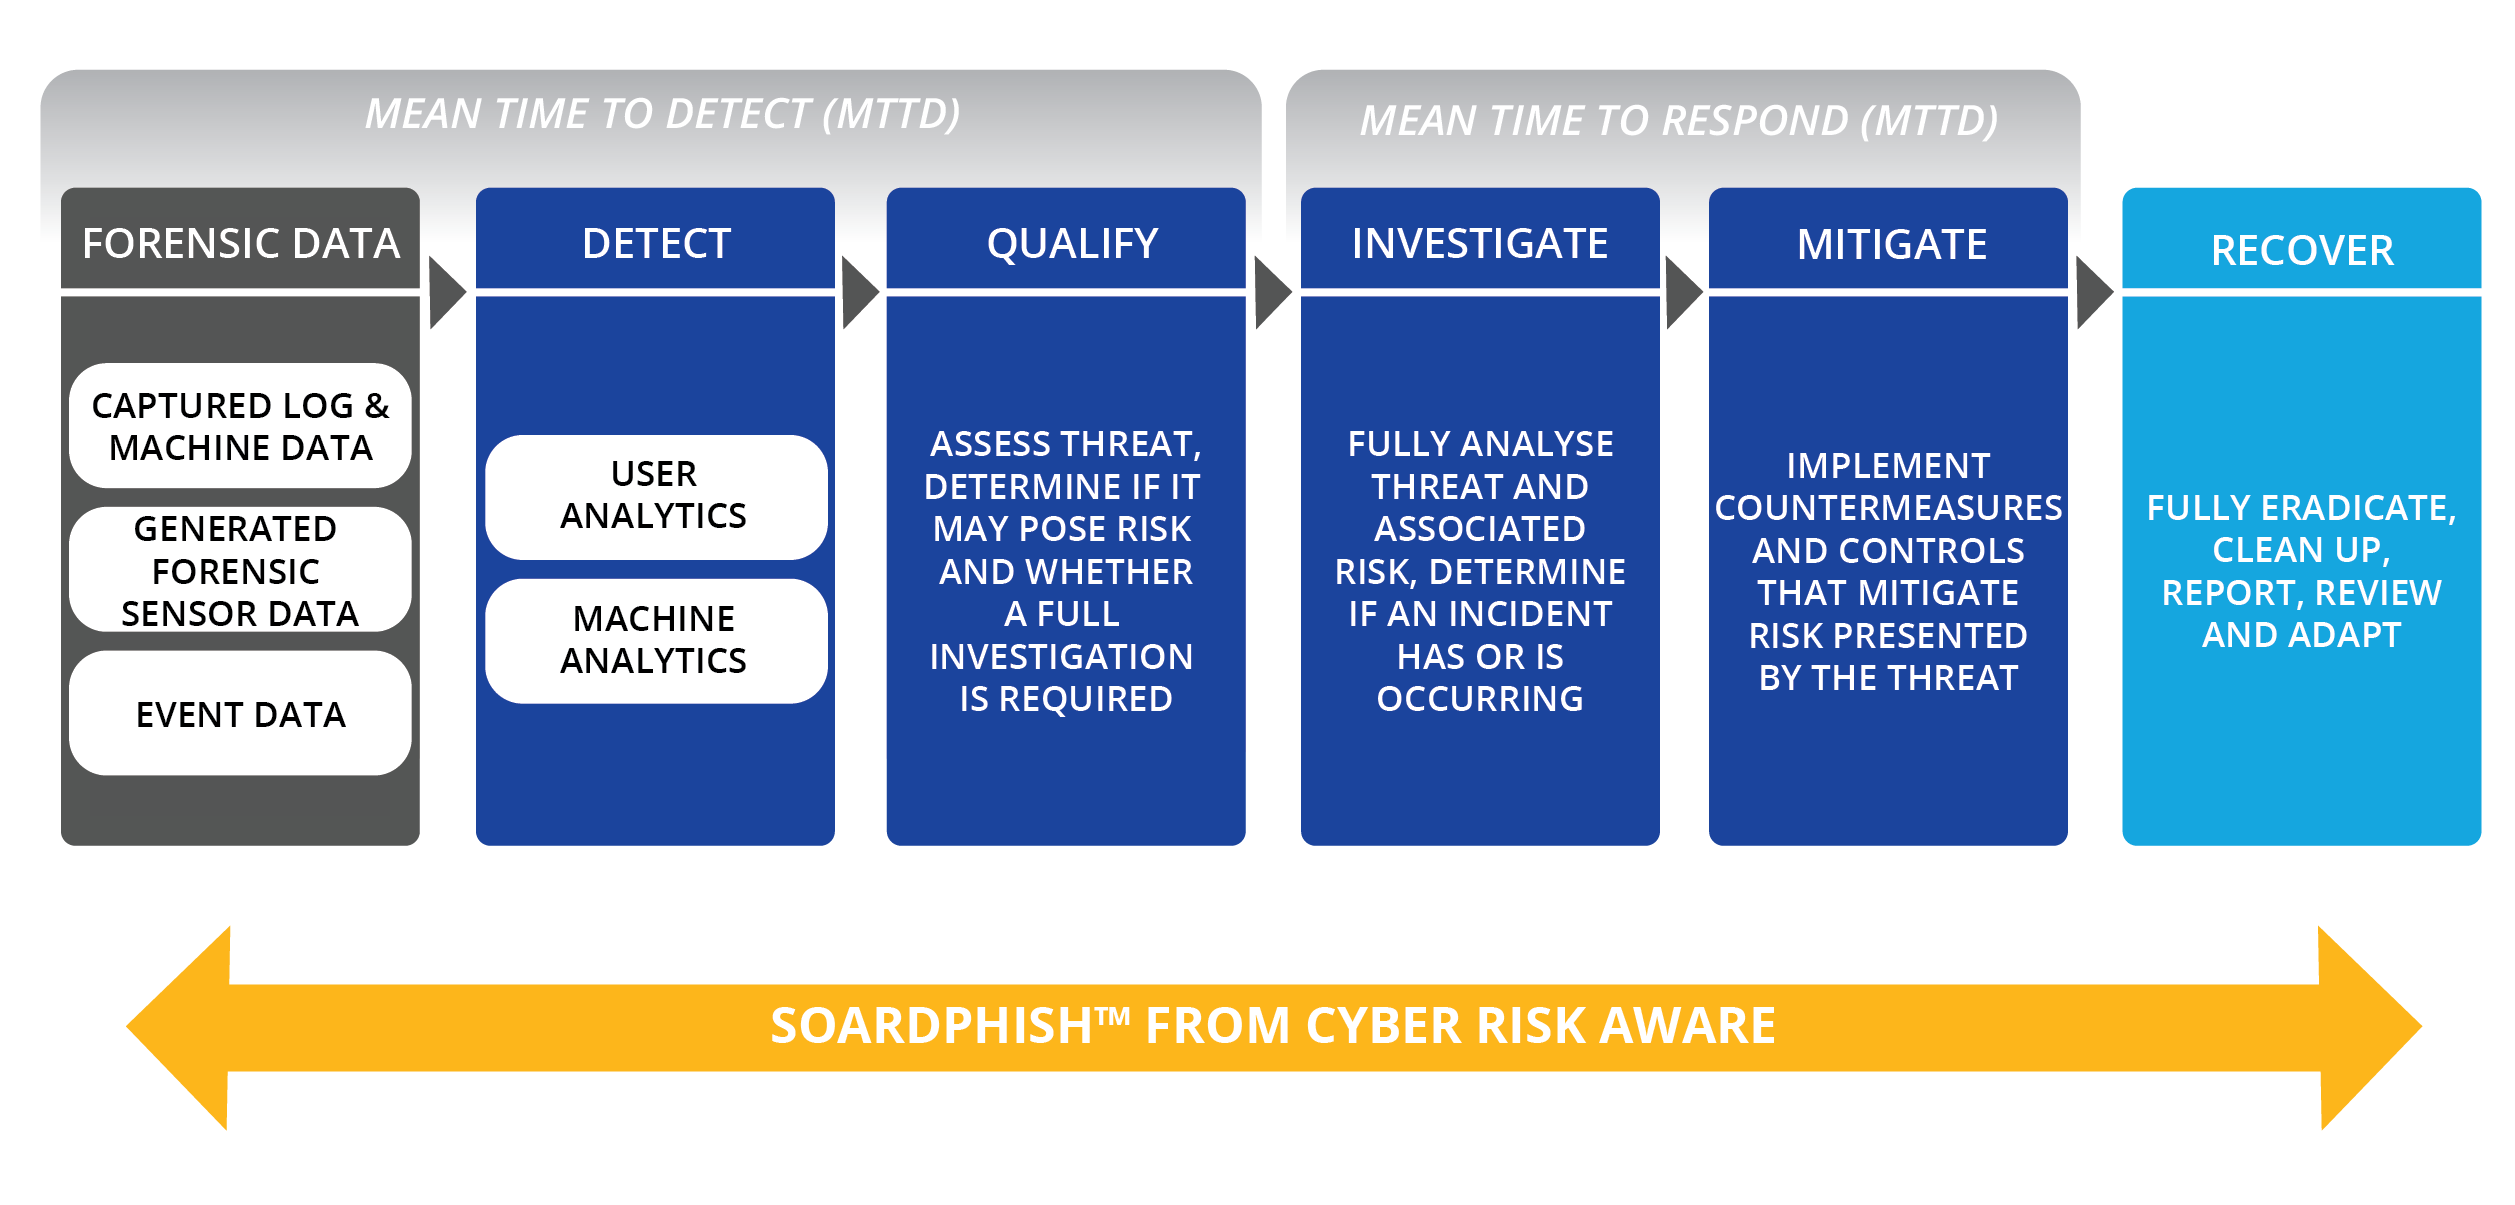 SOARDphish from Cyber RIsk Aware - Mean Time to Detect and Mean Time to Respnd Graphic